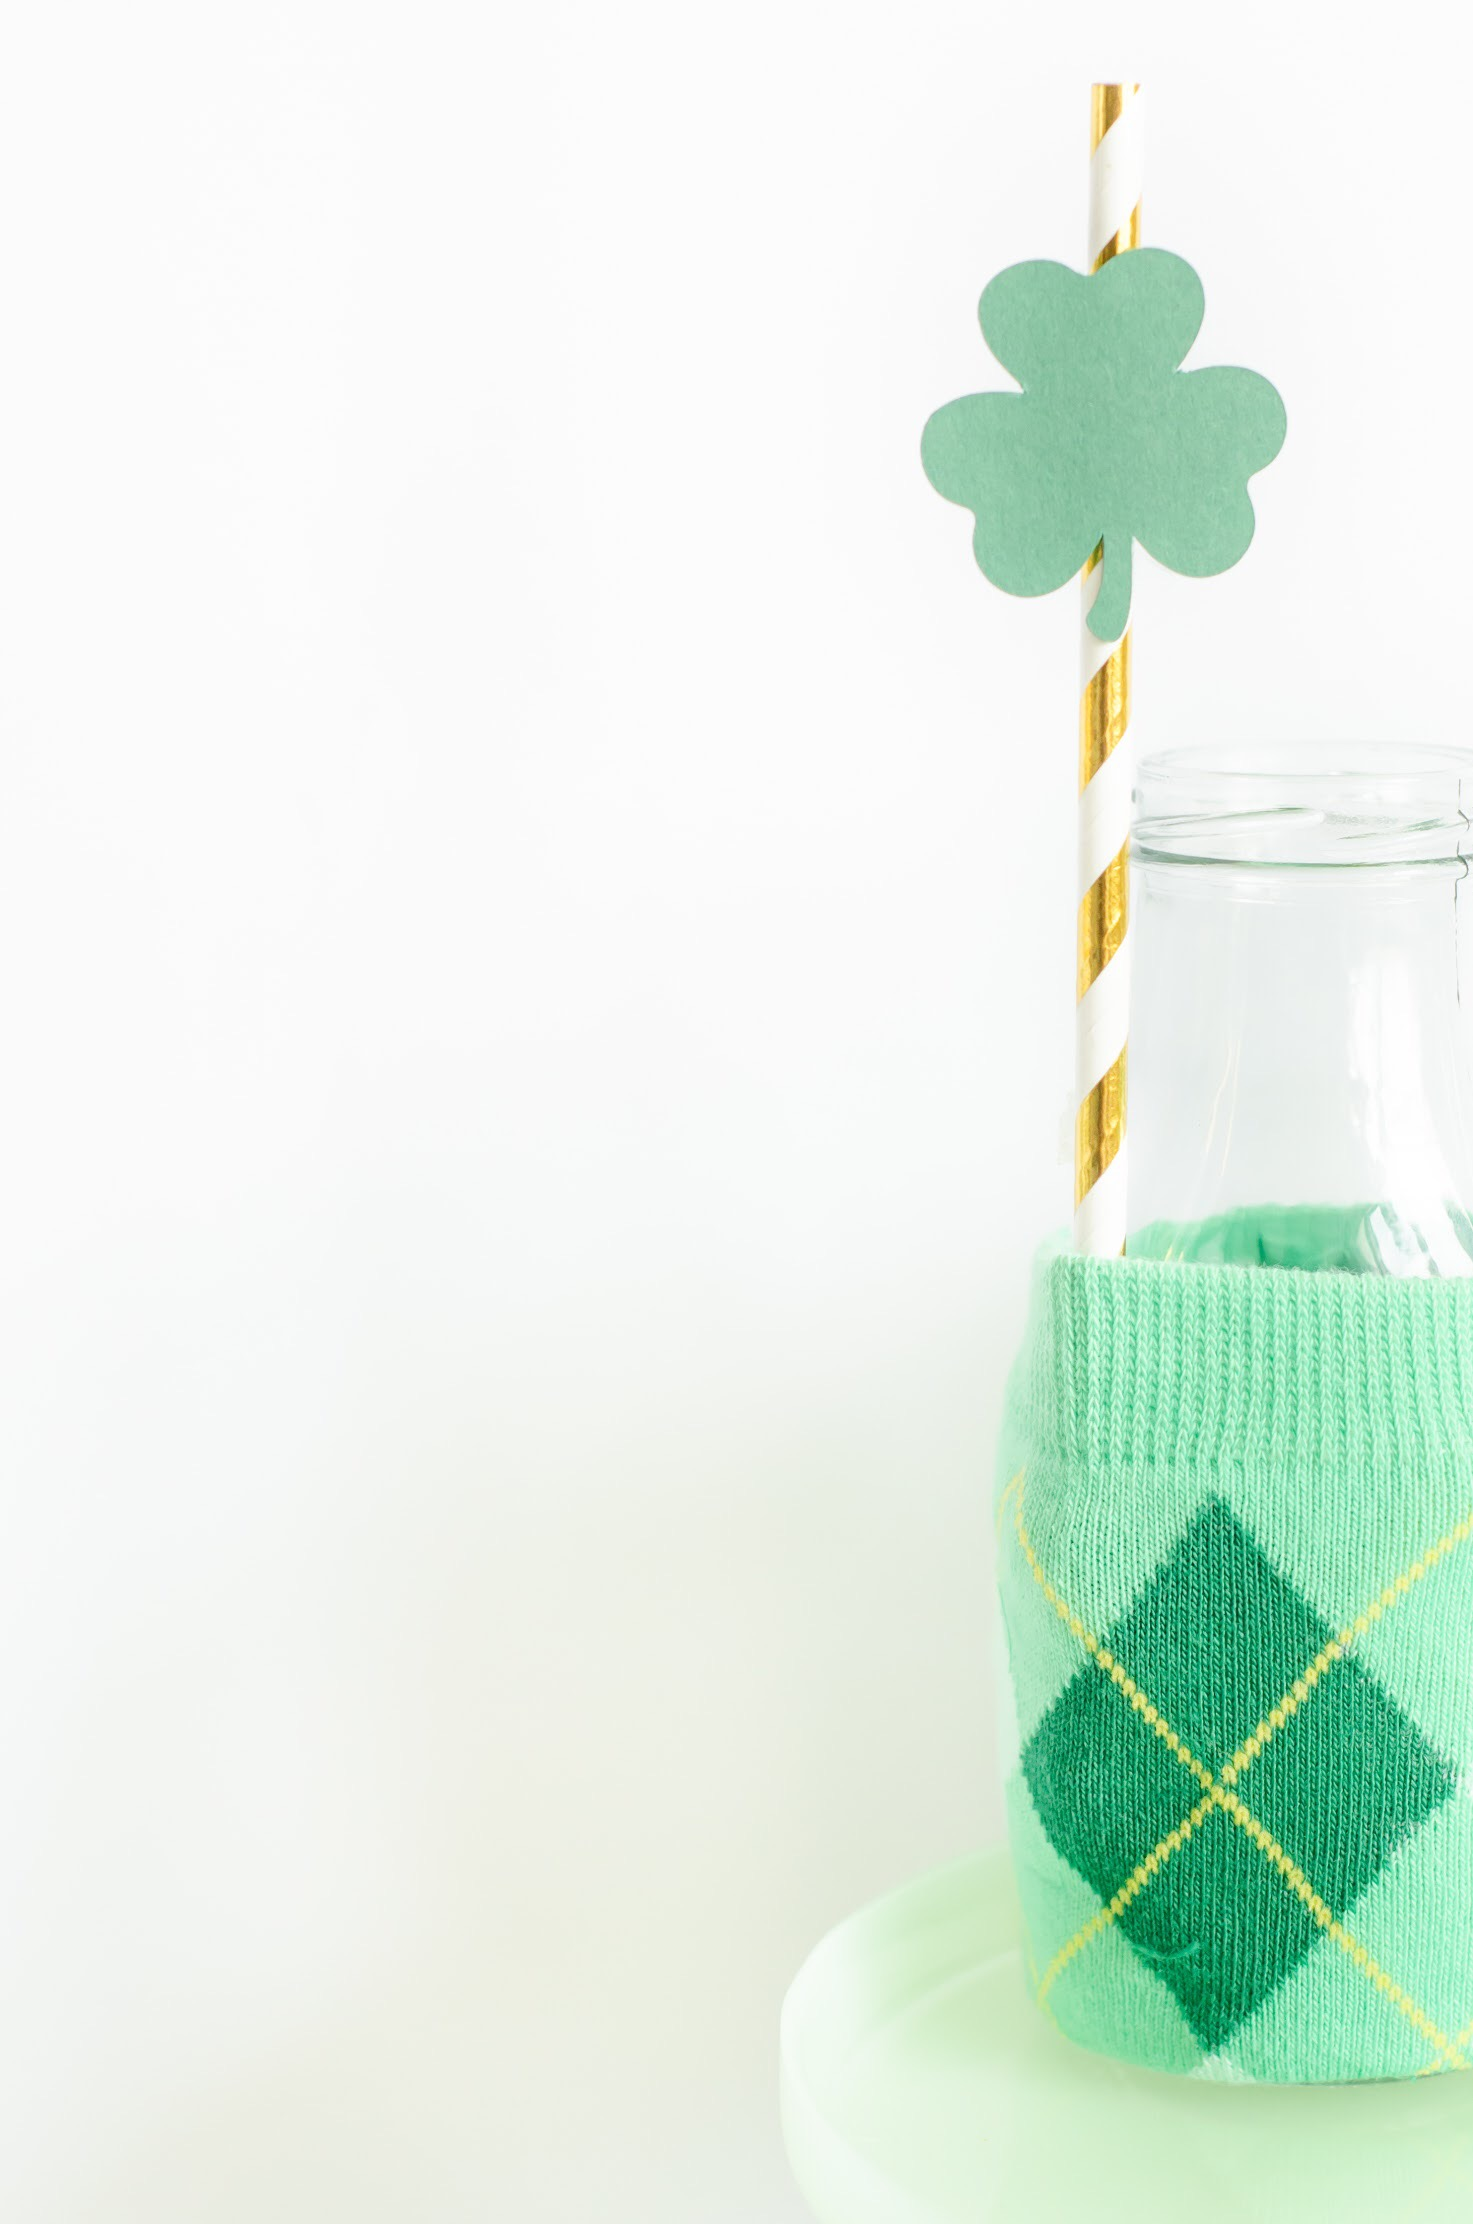 Repurpose holiday themed socks into cute milk jug wrappers for Saint Patricks Day - come see the full DIY on Mint Event Design www.minteventdesign.com #partyideas #partydecorations #saintpatricksday #stpatricksday #diycrafts #holidaycrafts #stpatricksdaycraft